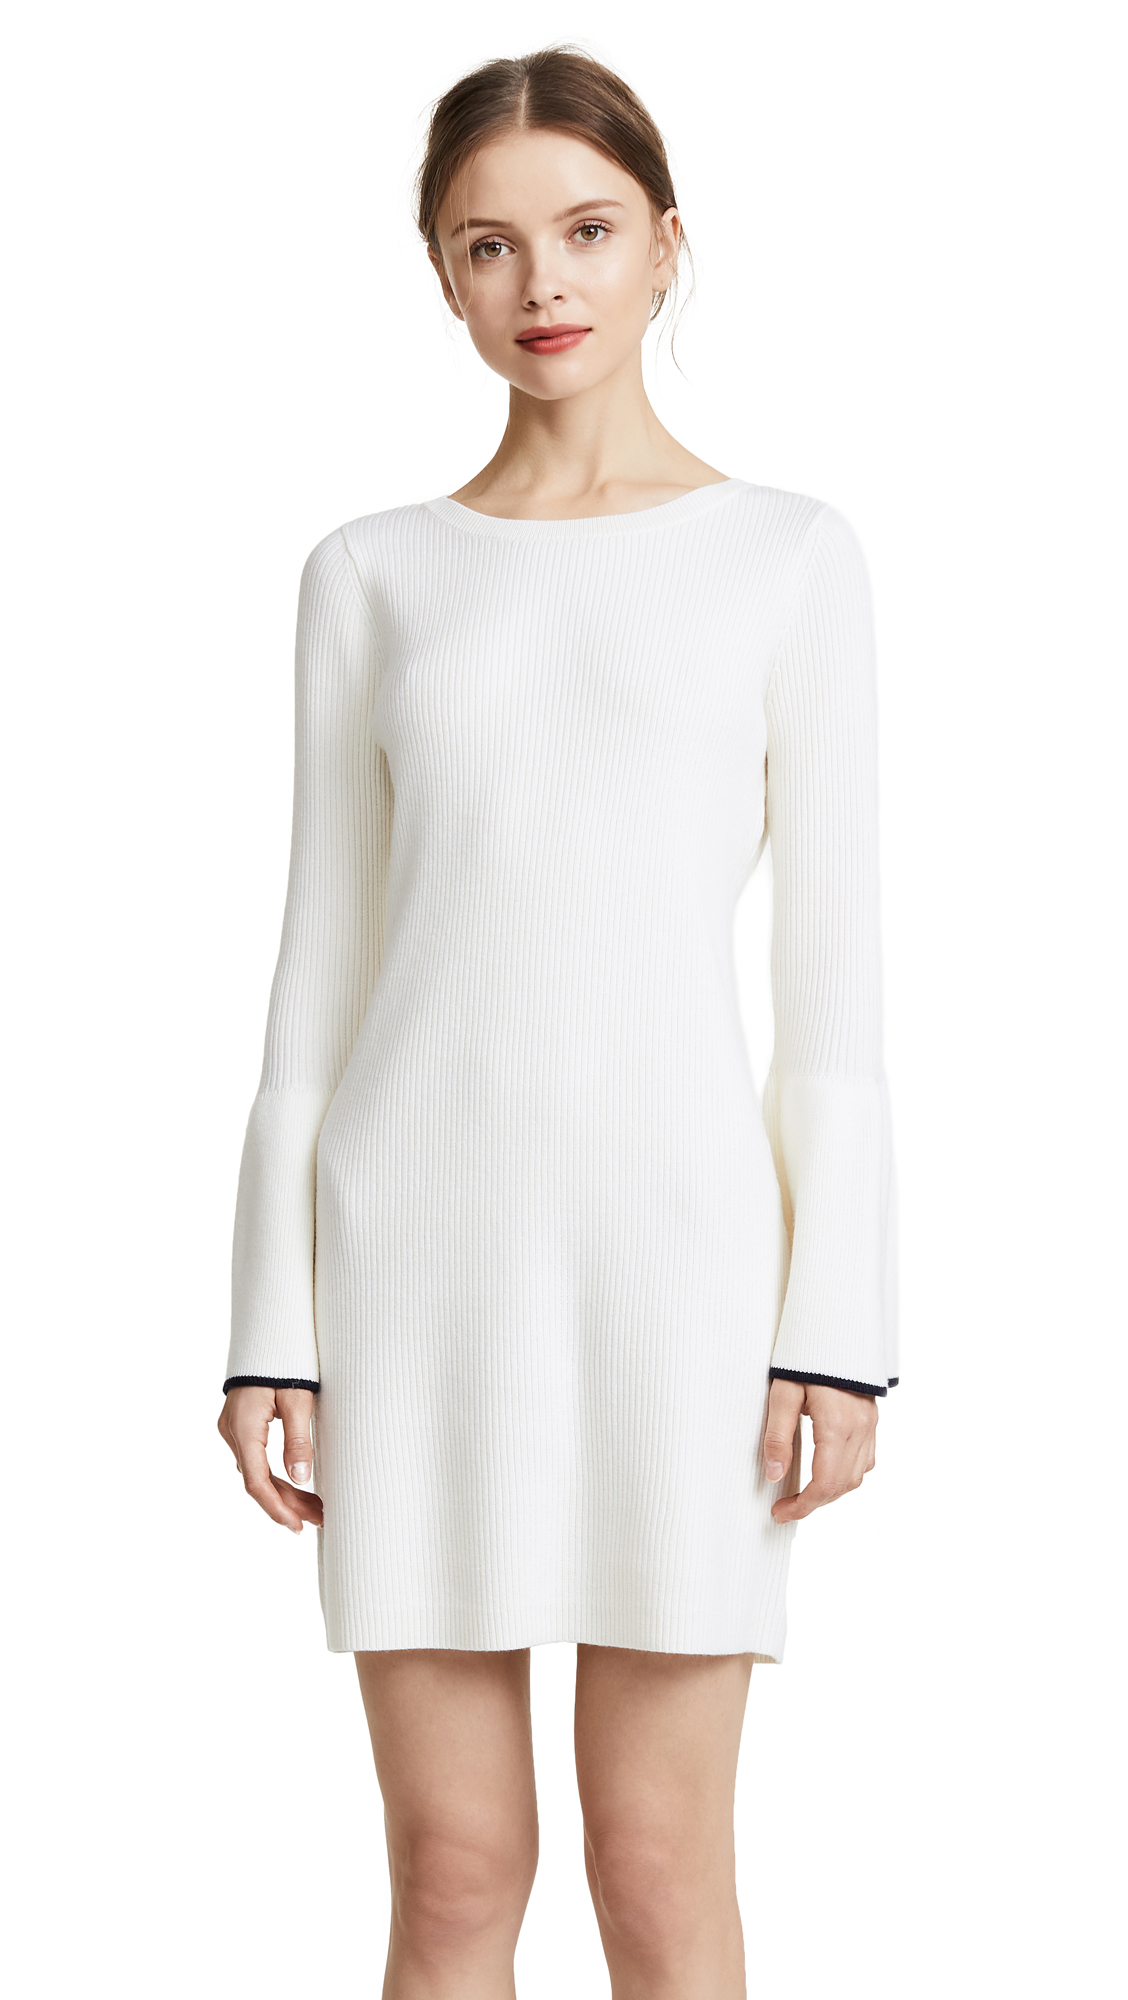 Club Monaco Wioletta Tipped Dress - White